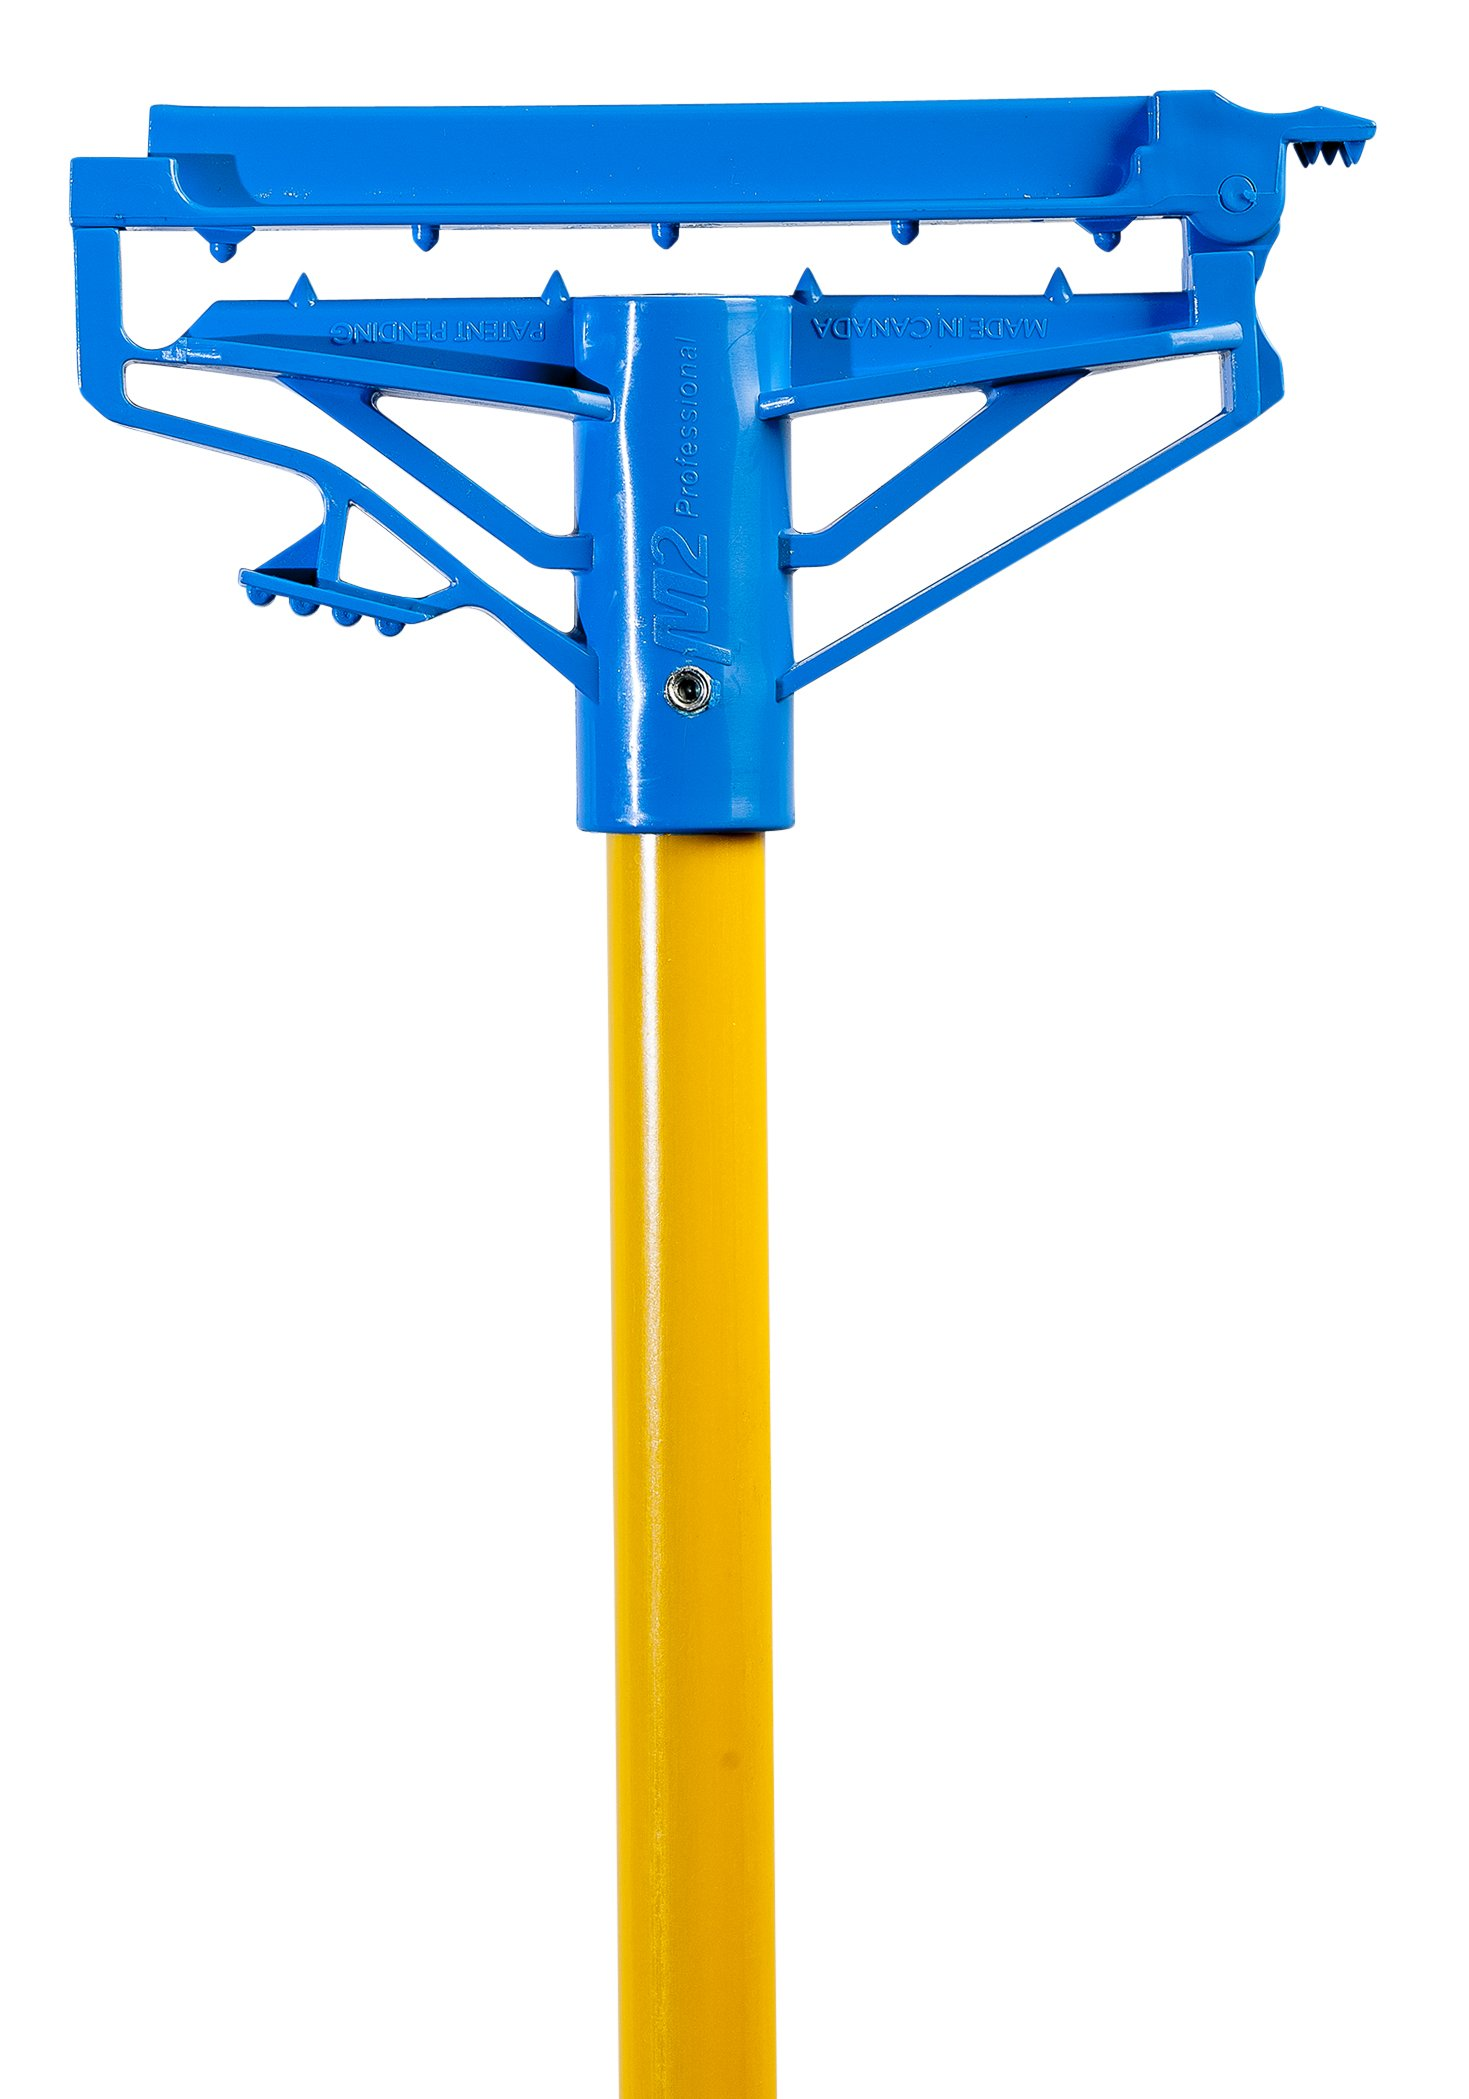 60'' Step-N-Go Fiberglass Mop Handle - Yellow (Case of 12) by M2 Professional Cleaning Products Ltd.